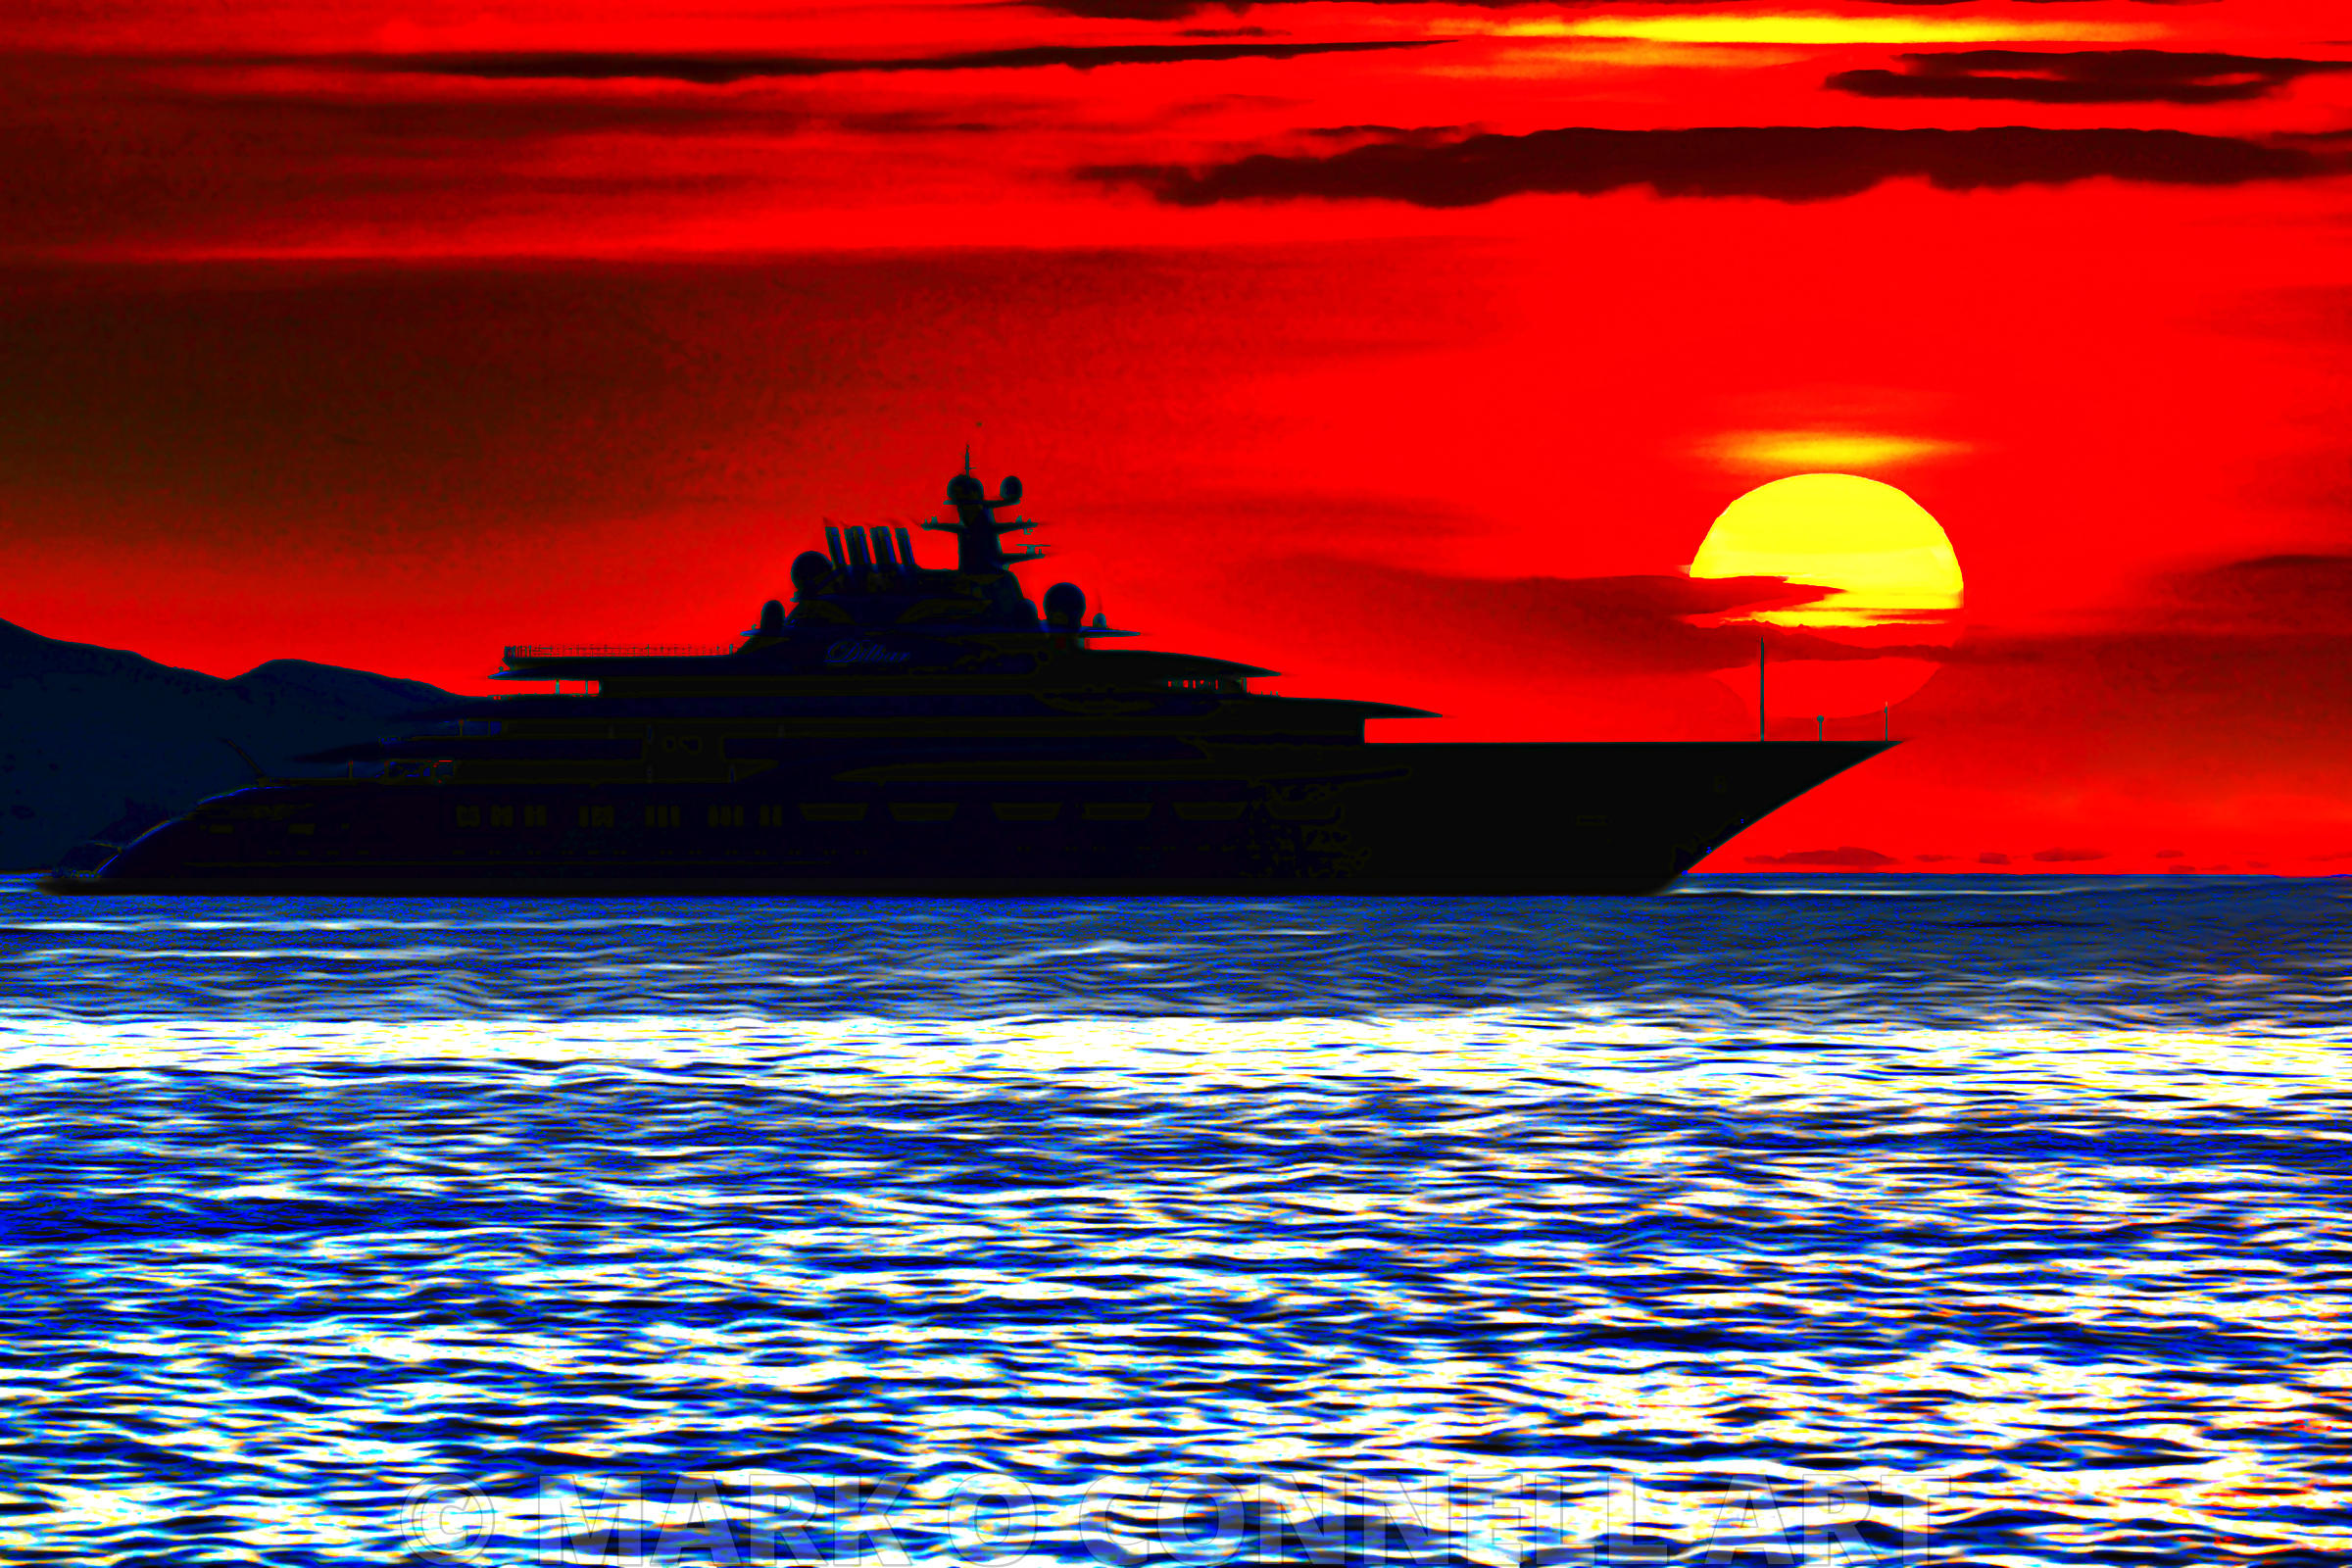 art,painting,airbrush,dilbar,sunset,water,ocean,sea,silhouette